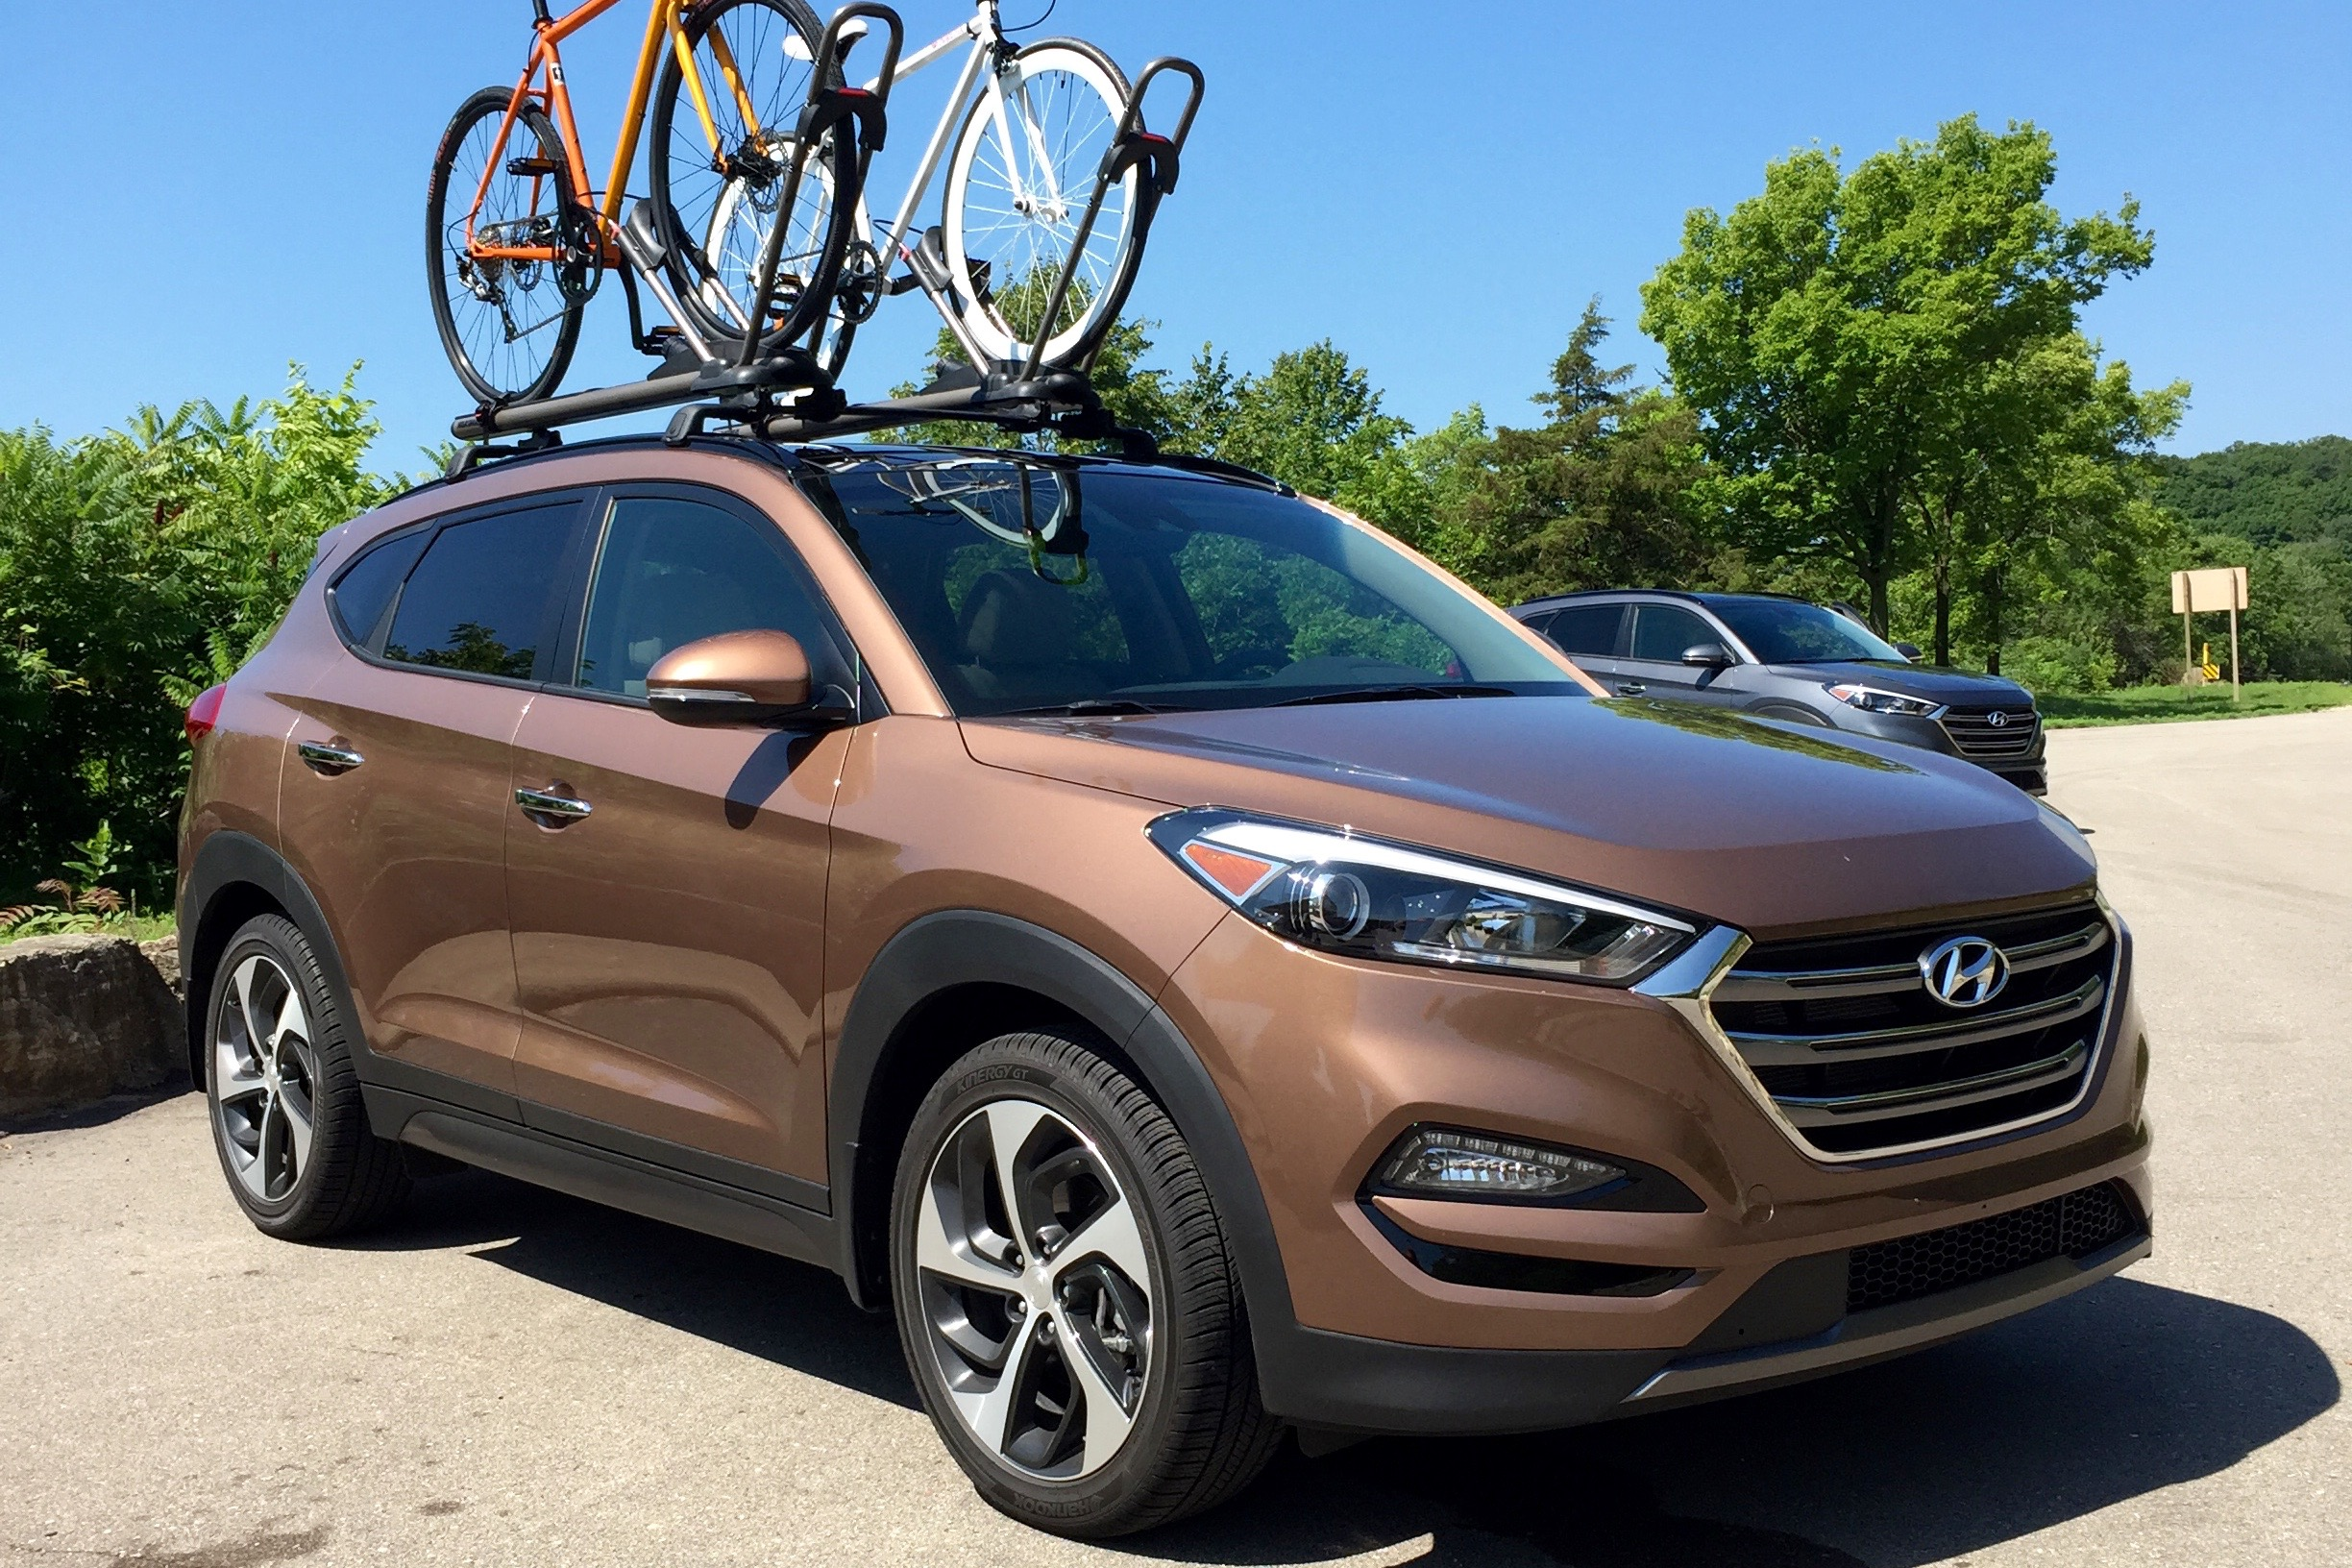 Hyundai Tucson Roof Bars Specialist Car And Vehicle